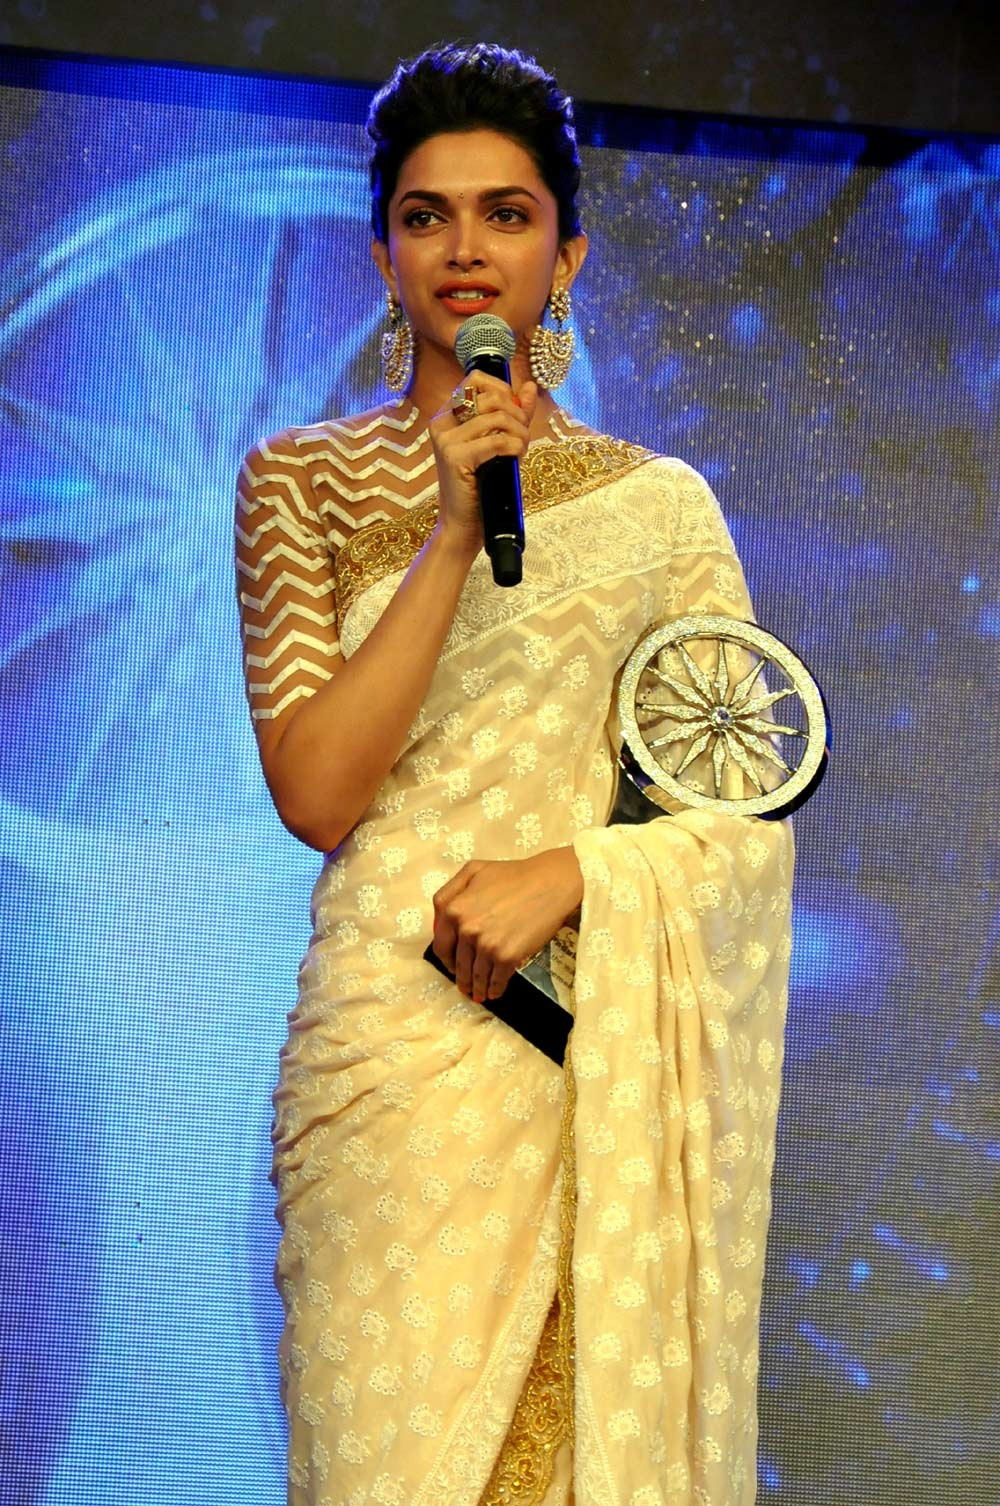 25 Hottest Images of Deepika Padukone In Saree